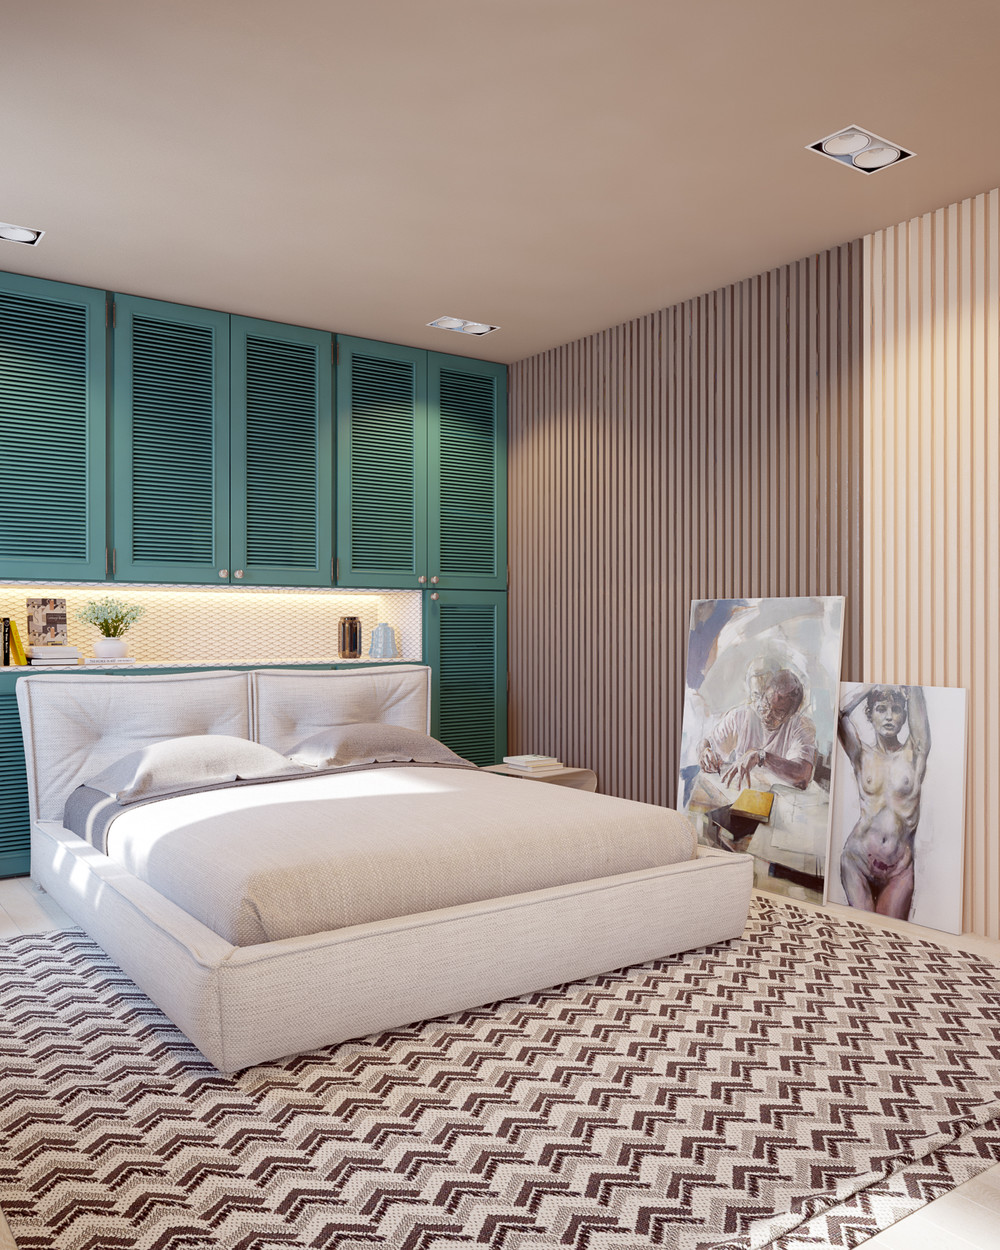 Accented Neutral Color Scheme Bedroom: Playful Ways To Brighten Neutral Color Themes